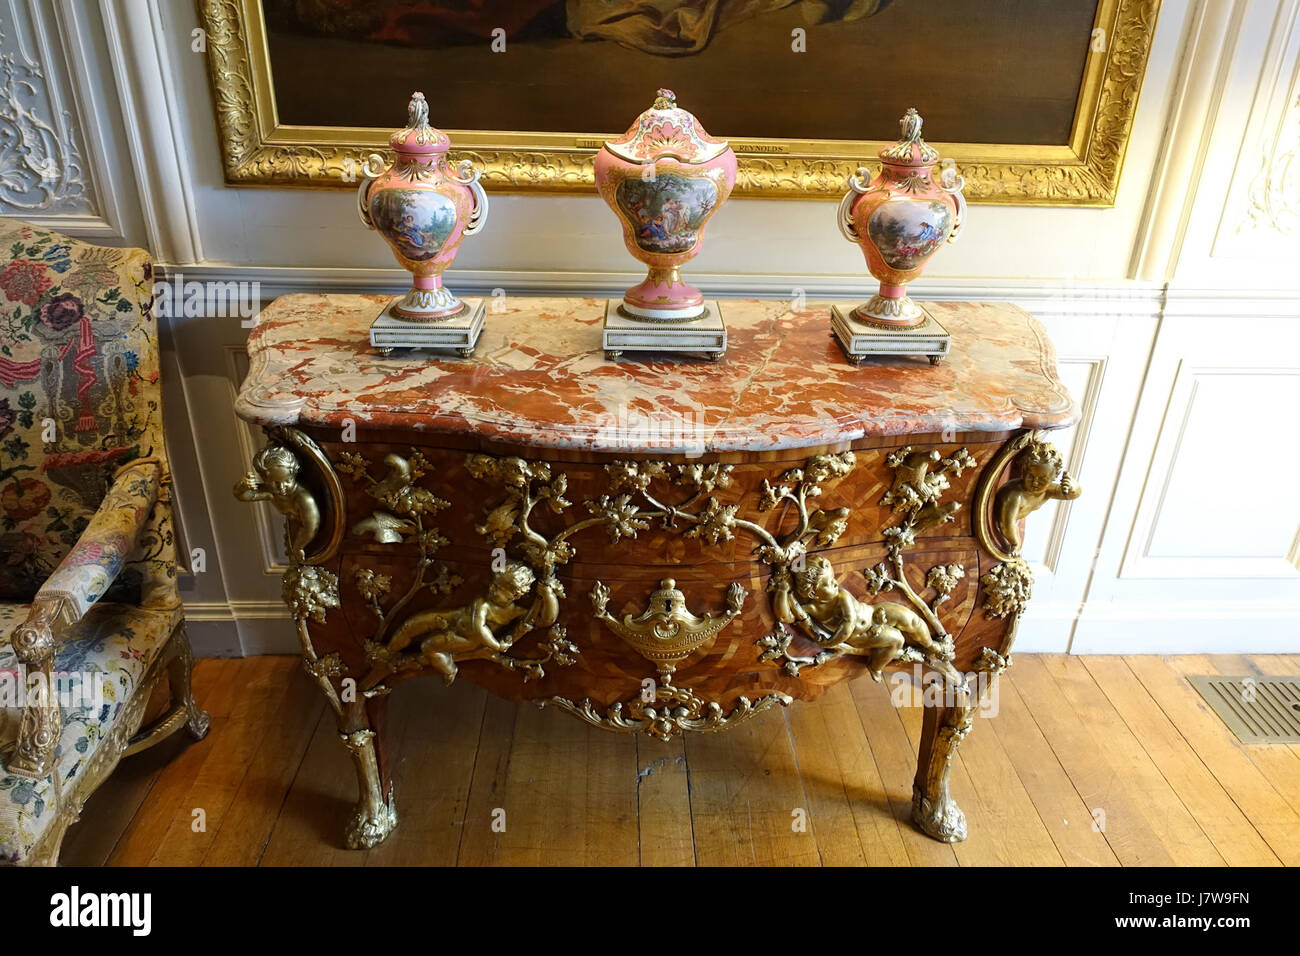 Chest of drawers by Charles Cressent, Paris, c. 1730, with Sevres porcelain   Waddesdon Manor   Buckinghamshire, - Stock Image